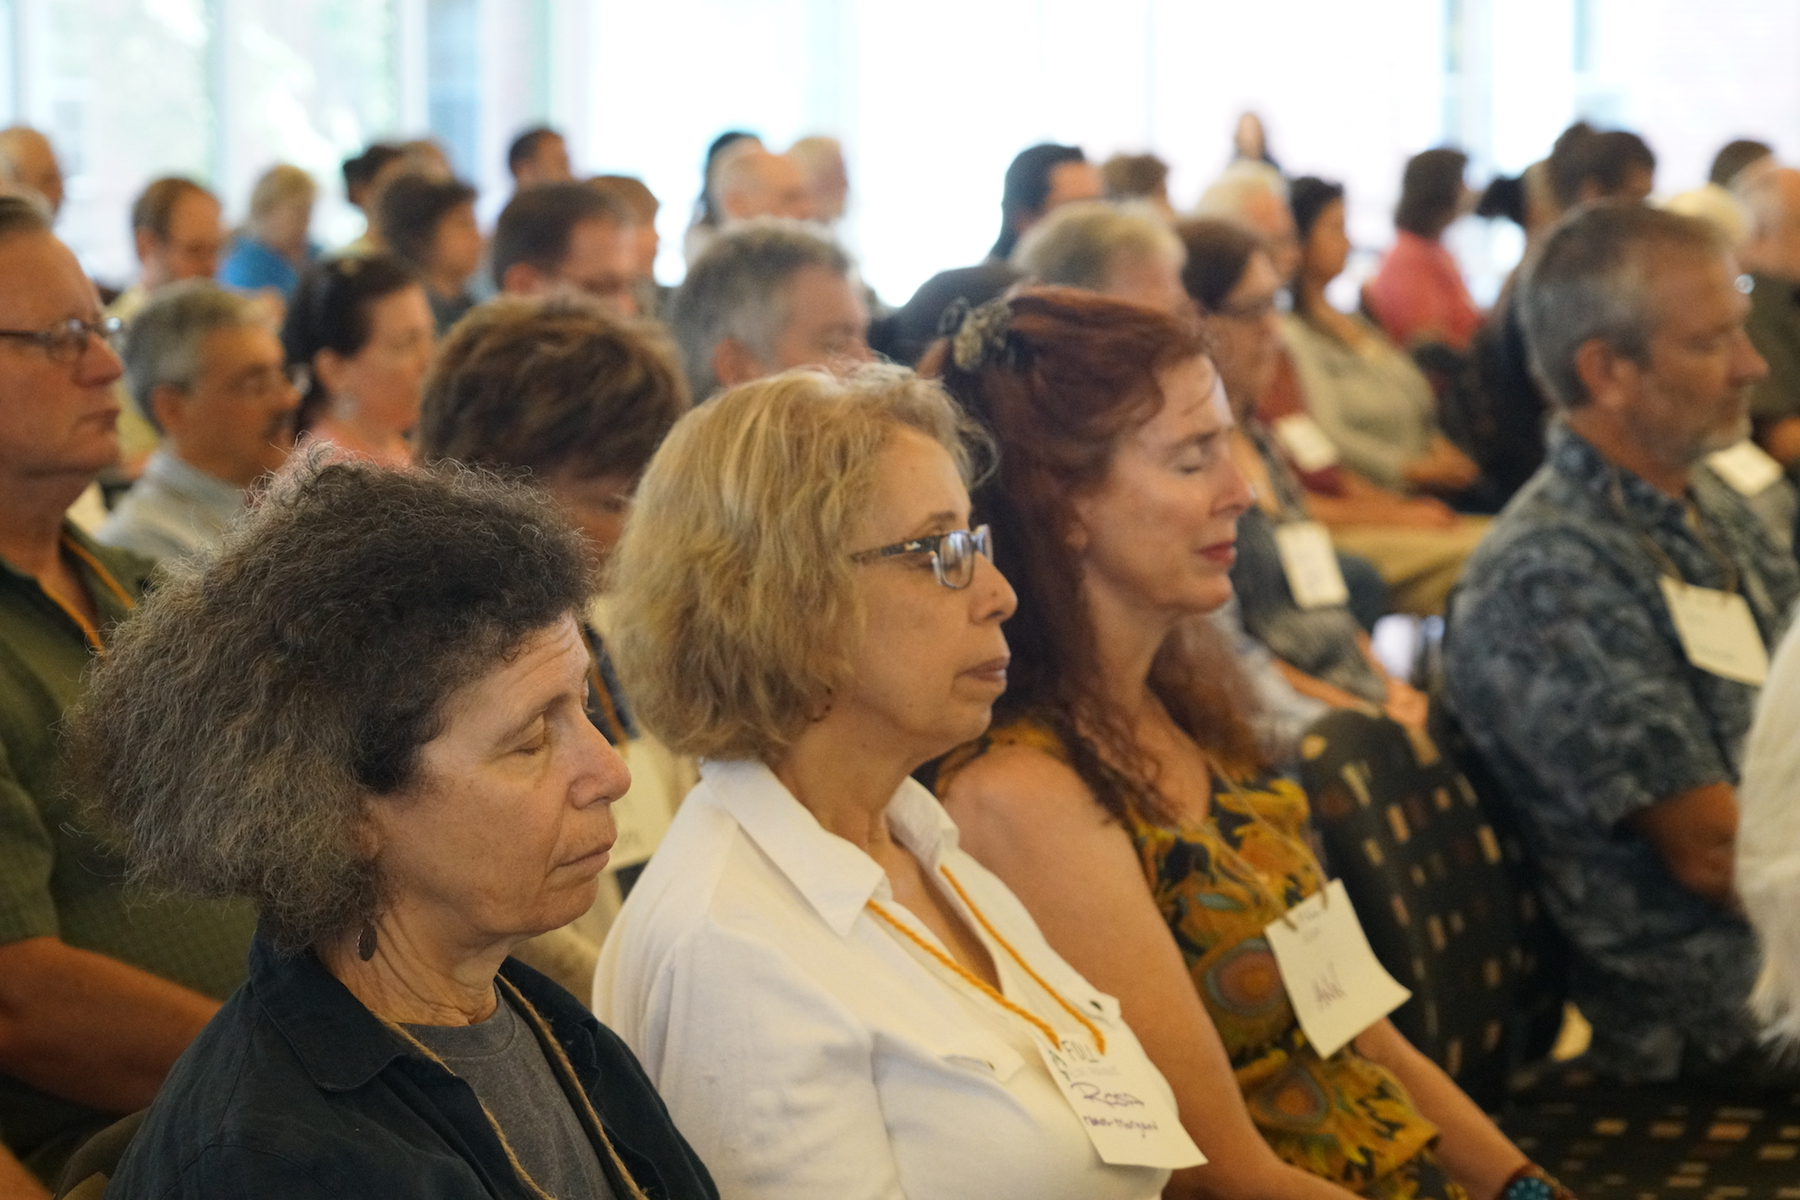 Participants close their eyes during a brief prayer led by Jul Bystrova during the conference's opening session. Photo by Teresa Konechne.